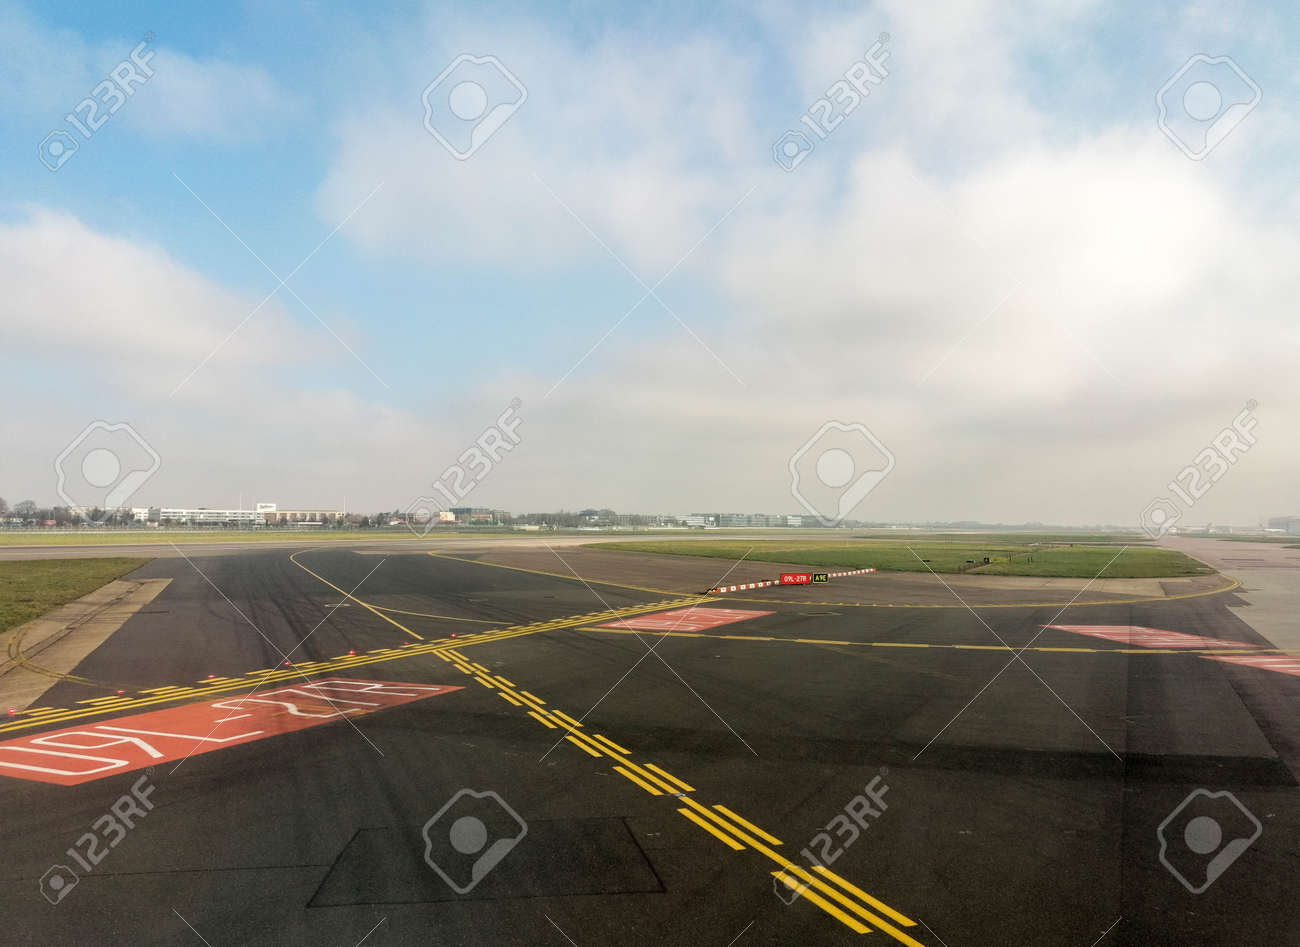 A passenger view from onboard a passenger aircraft of an airport area before the plane departs or just after it has arrived. - 166119415